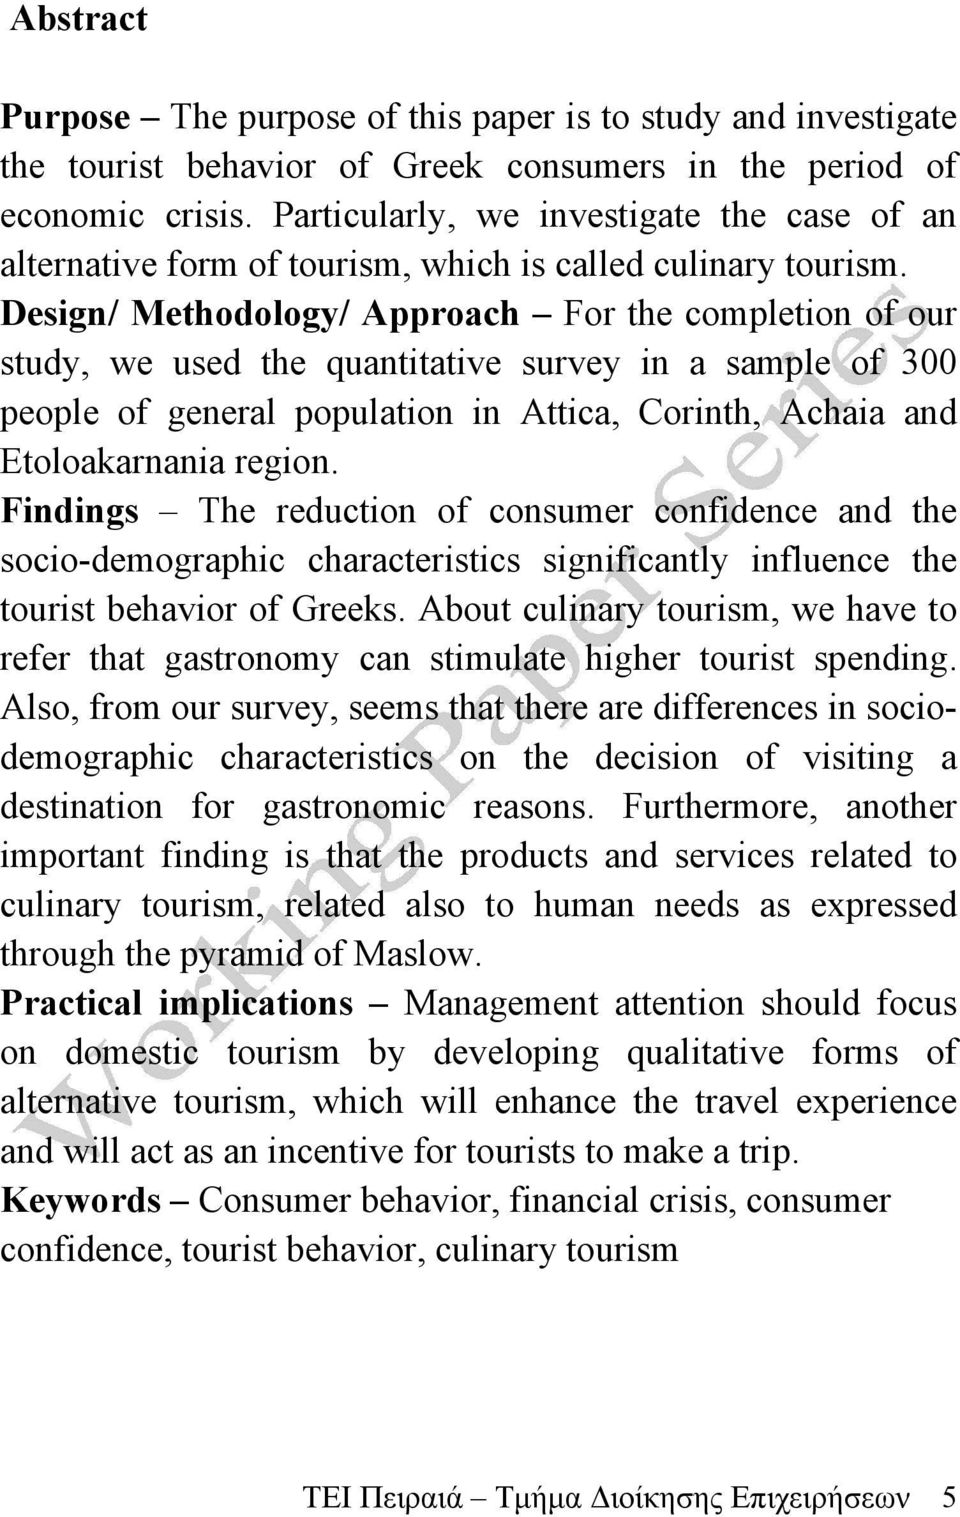 Design/ Methodology/ Approach For the completion of our study, we used the quantitative survey in a sample of 300 people of general population in Attica, Corinth, Achaia and Etoloakarnania region.